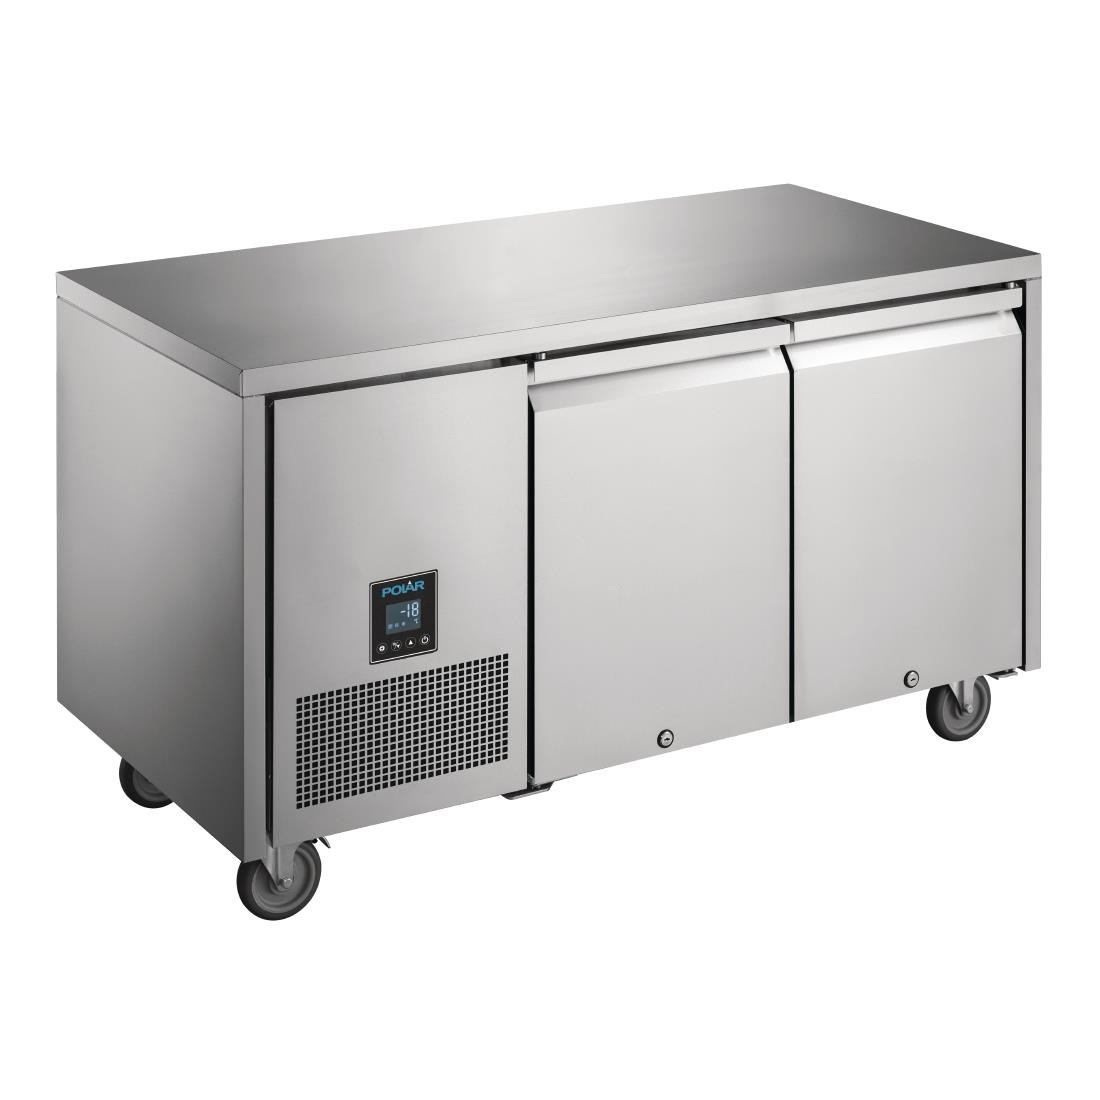 Polar UA006 U-Series Premium Double Door Counter Freezer